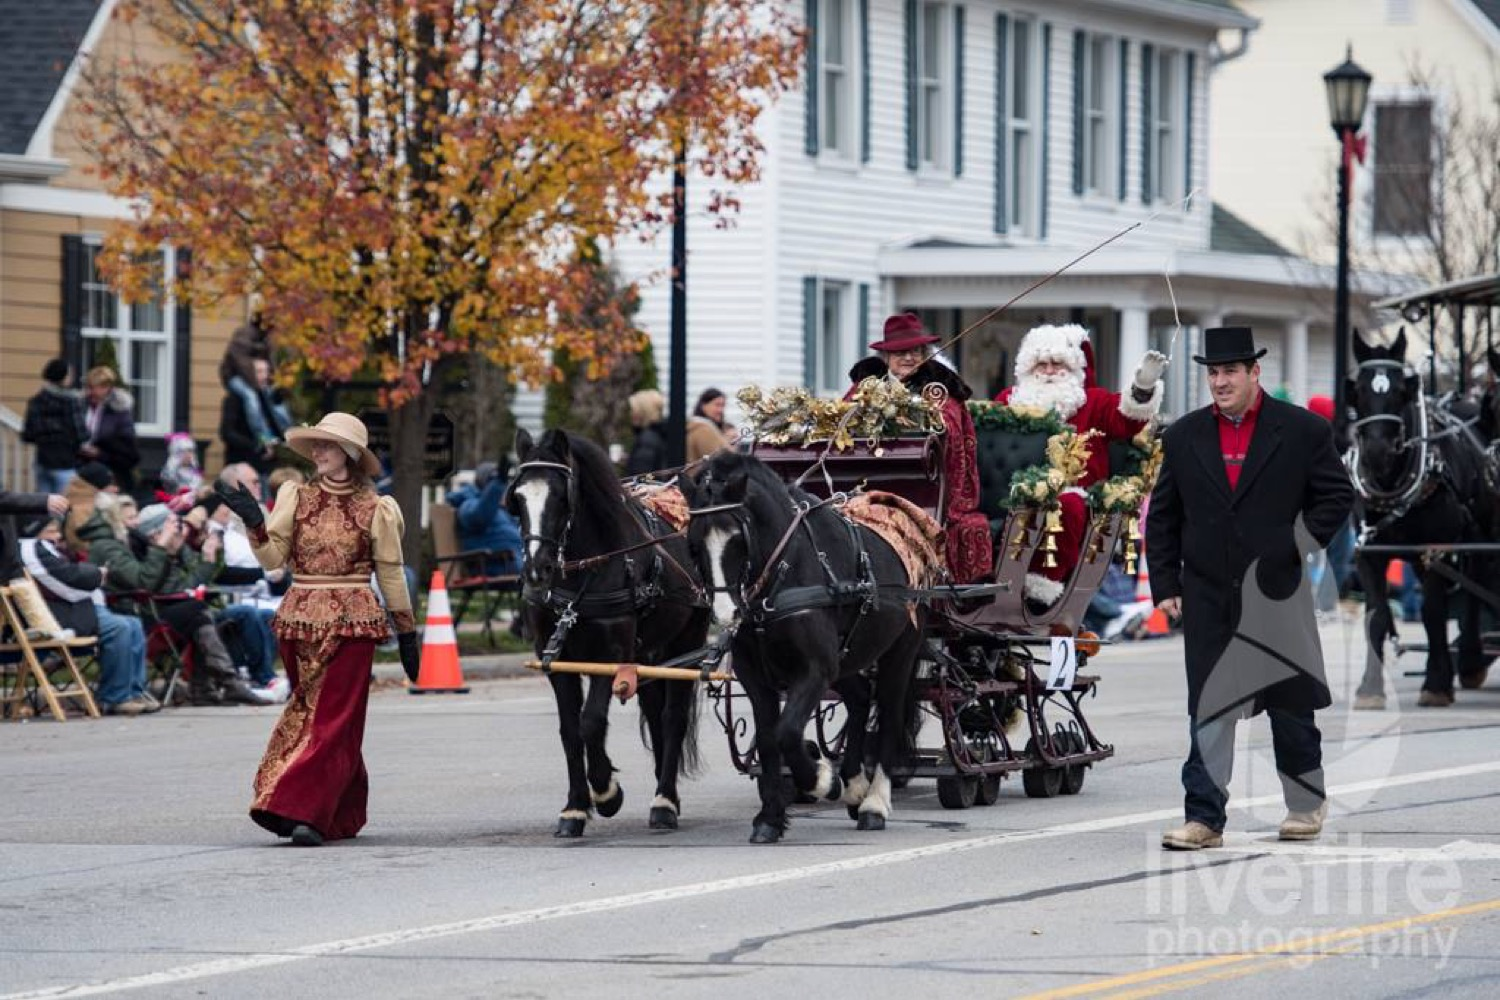 Highlights of Lebanon's holiday event calendar include a ride on the North Pole Express with Santa, a live nativity, dinner at the Golden Lamb, and a rendition of Charlie Brown Christmas. / Image: Curt McAdams